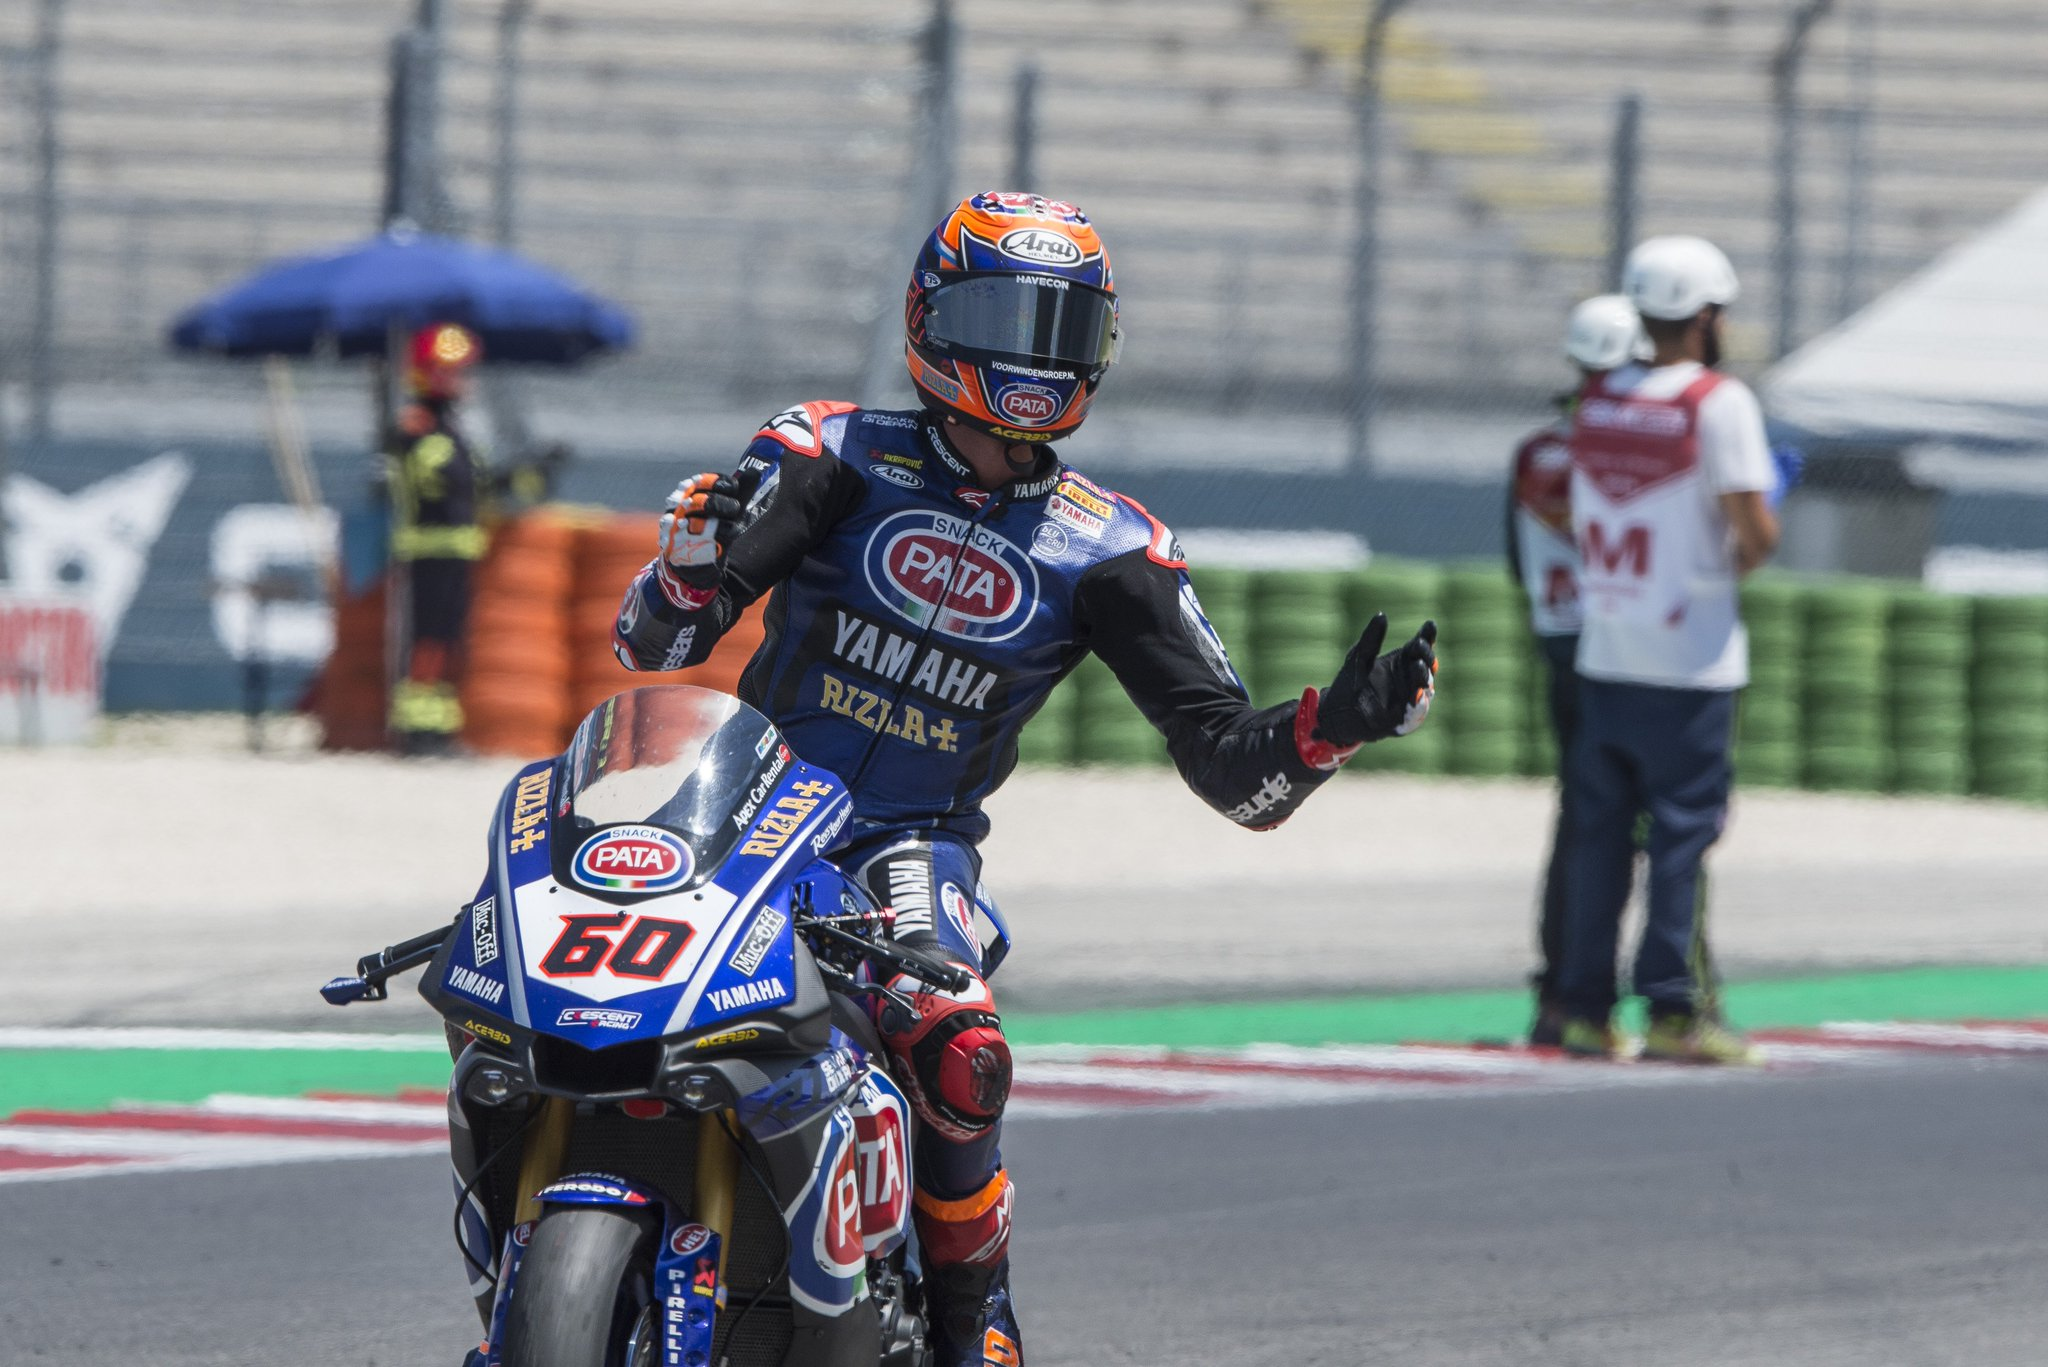 Pata Yamaha WorldSBK on Twitter: